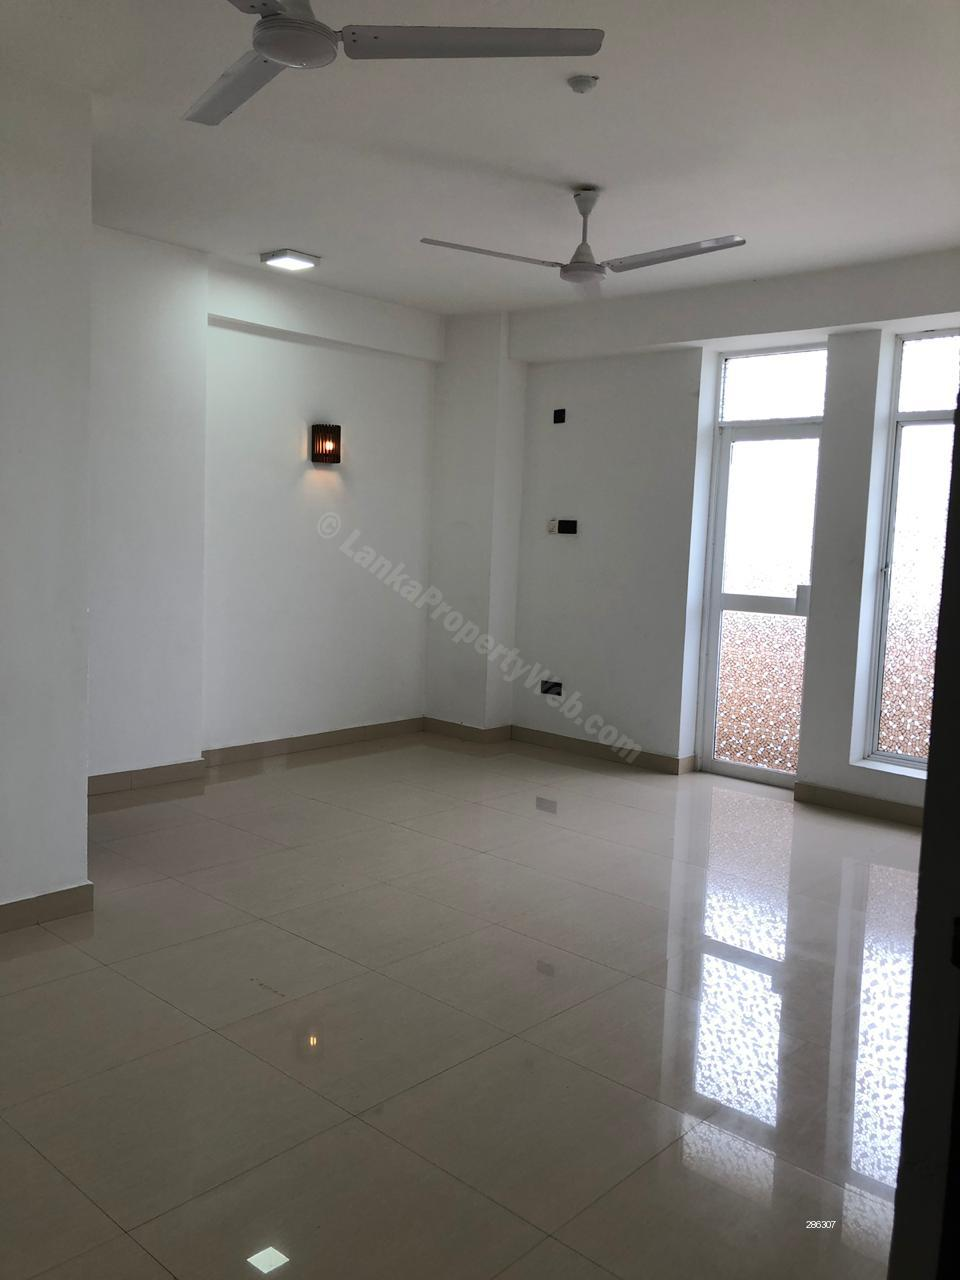 Apartment for sale in Colombo 6 - Brand new apartment for sale in Colombo 6